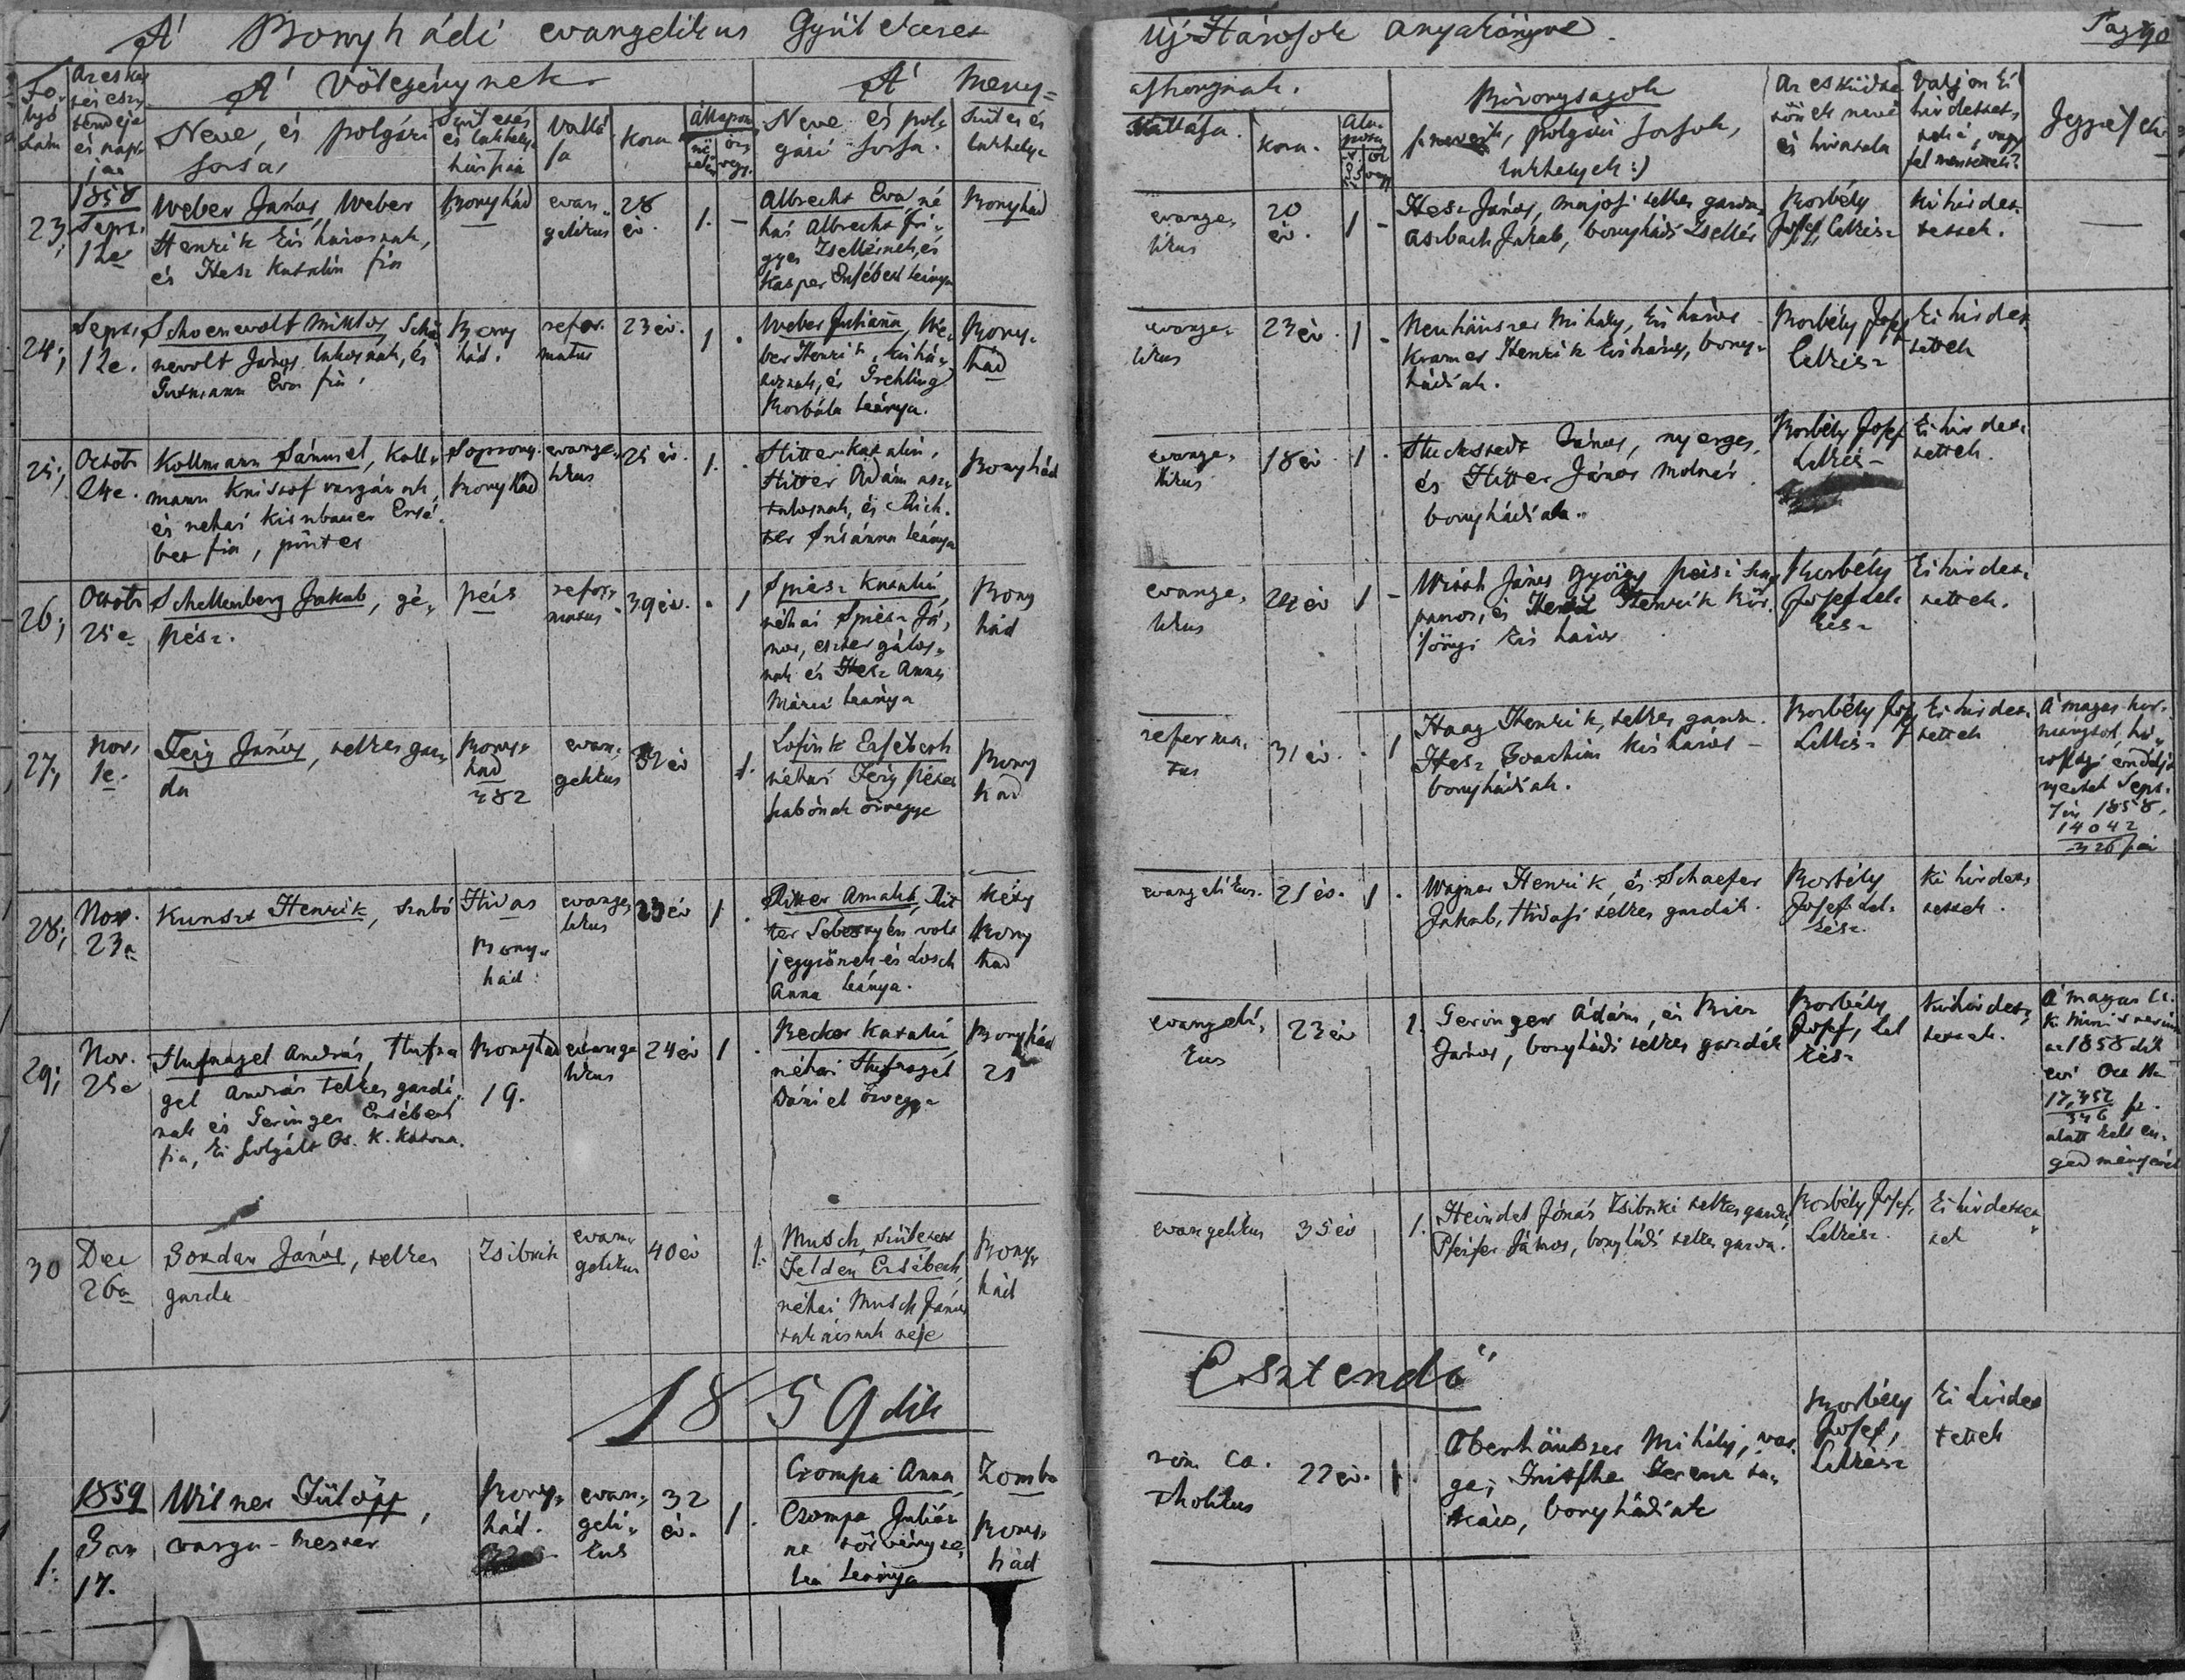 Married: 25 October 1858  Groom: Schellenberg Jakab, engineer  Residence: Pécs  Confession: Reformed  Age: 39 years  Bride: Katalin Spiesz, daughter of Spiesz János, ?? and, Hesz Anna Mária  Residence: Bonyhád  Confession: Evangelical  Age: 24 years  Witnesses: Wirth János György and Hesz Henrik